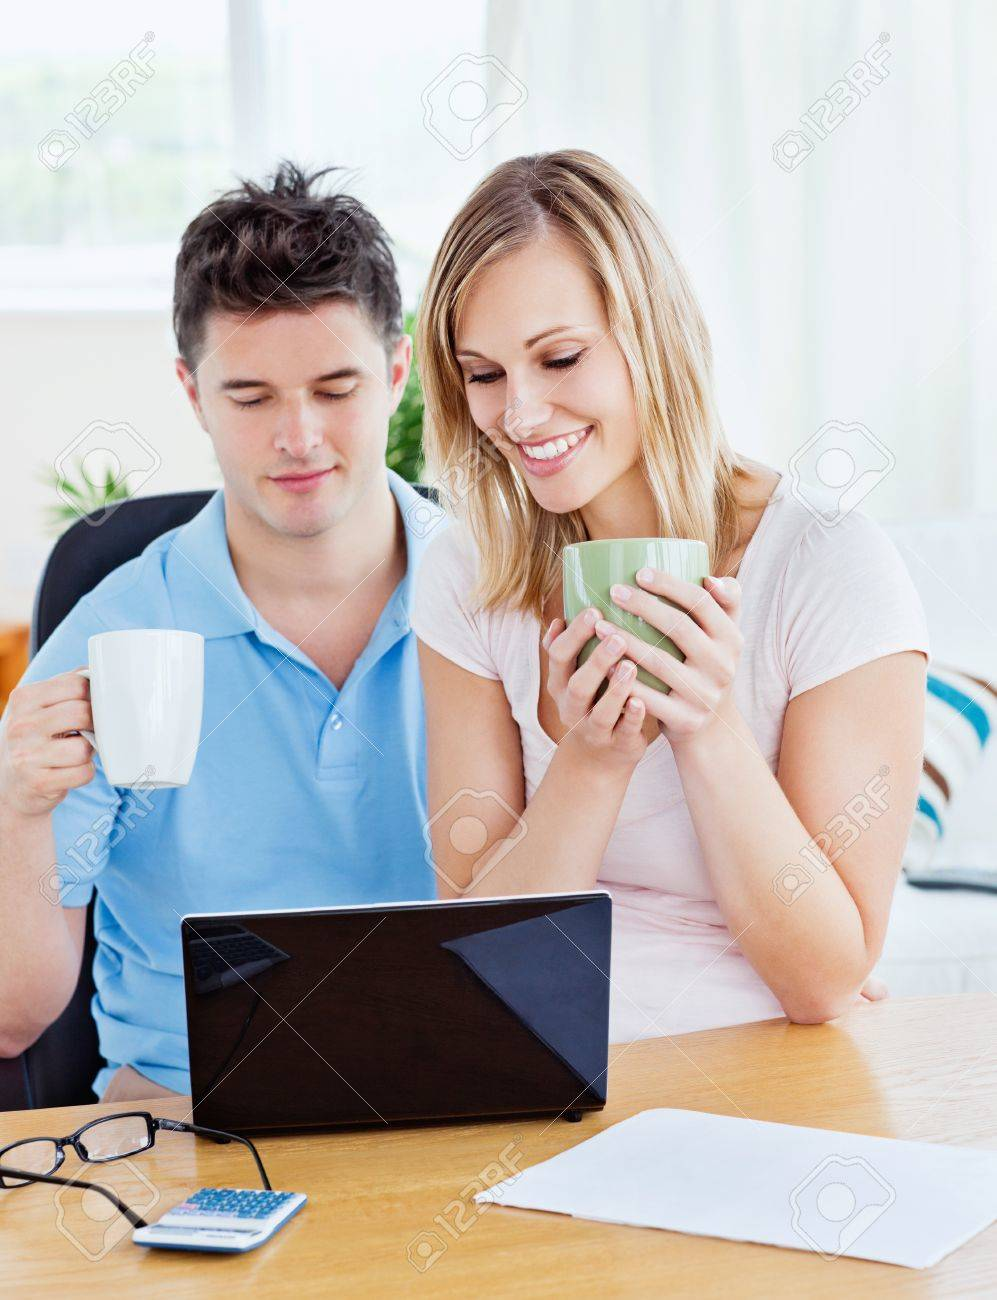 Happy couple using a laptop sitting together at a table holding cups of coffee Stock Photo - 10254102